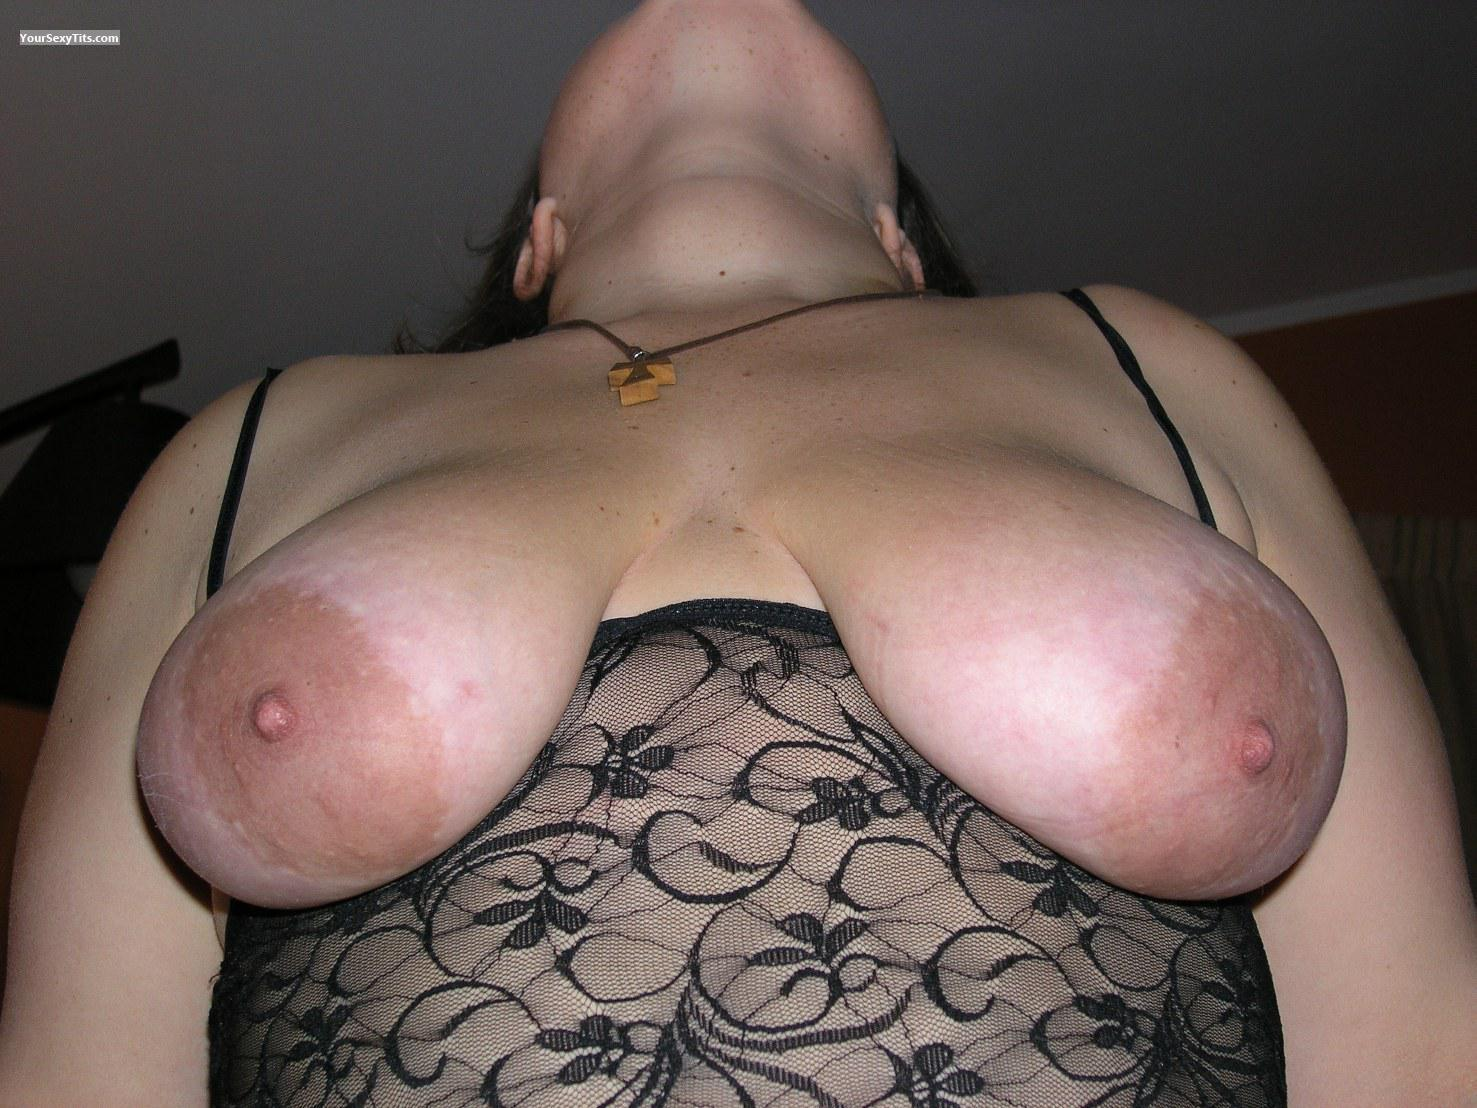 Tit Flash: Wife's Big Tits - Topless Boccadoro77 from Italy